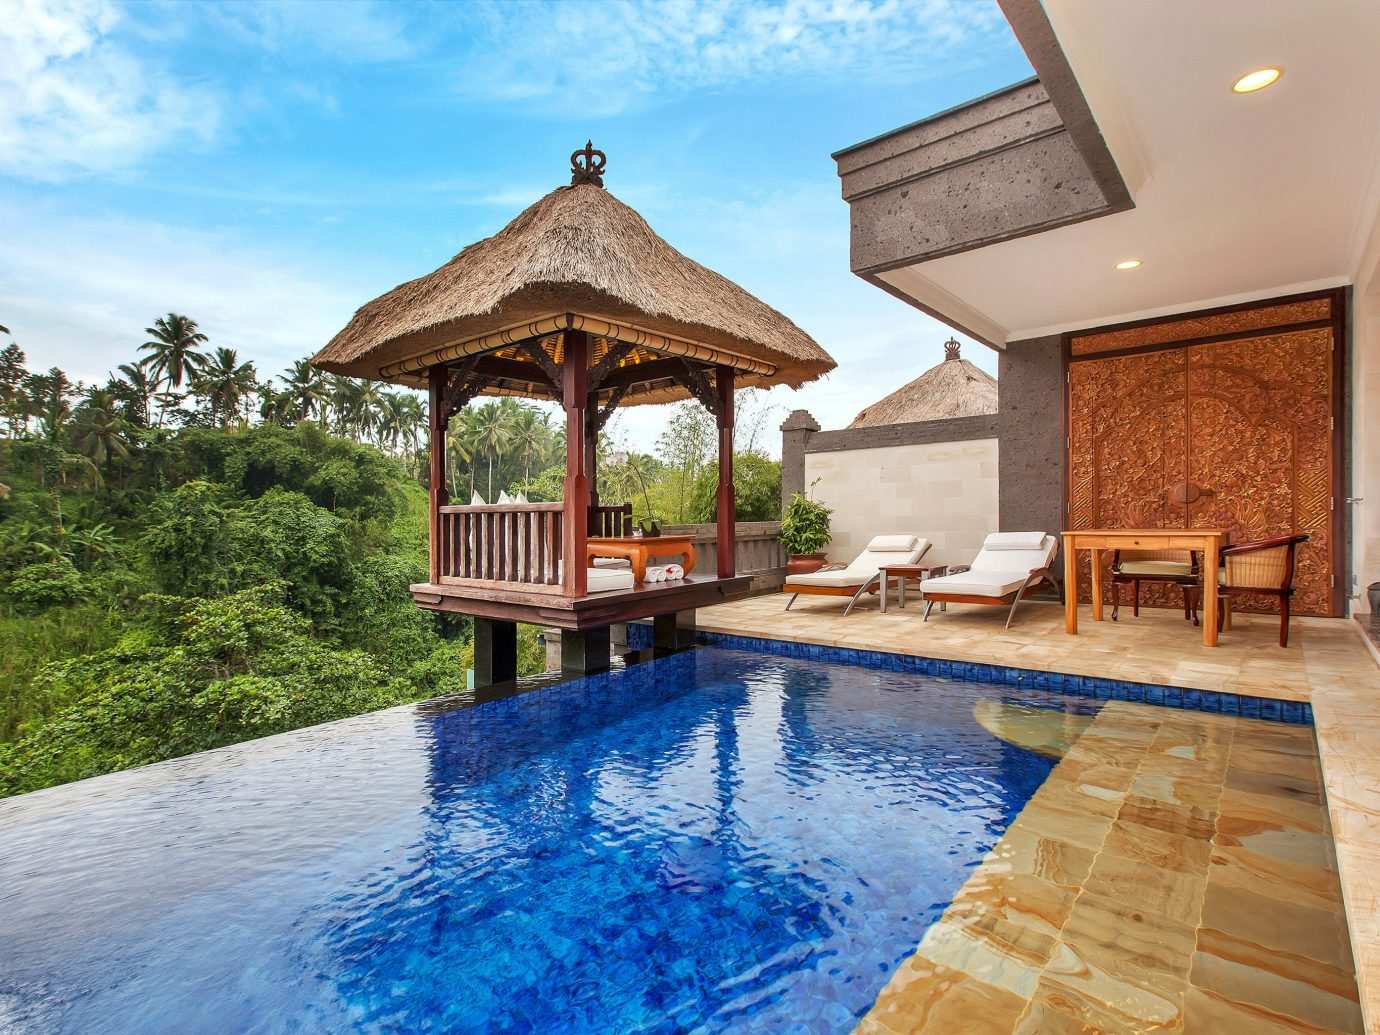 Elegant Hotels Luxury Pool Tropical outdoor building swimming pool property estate Resort Villa vacation real estate home backyard mansion cottage hacienda stone Island